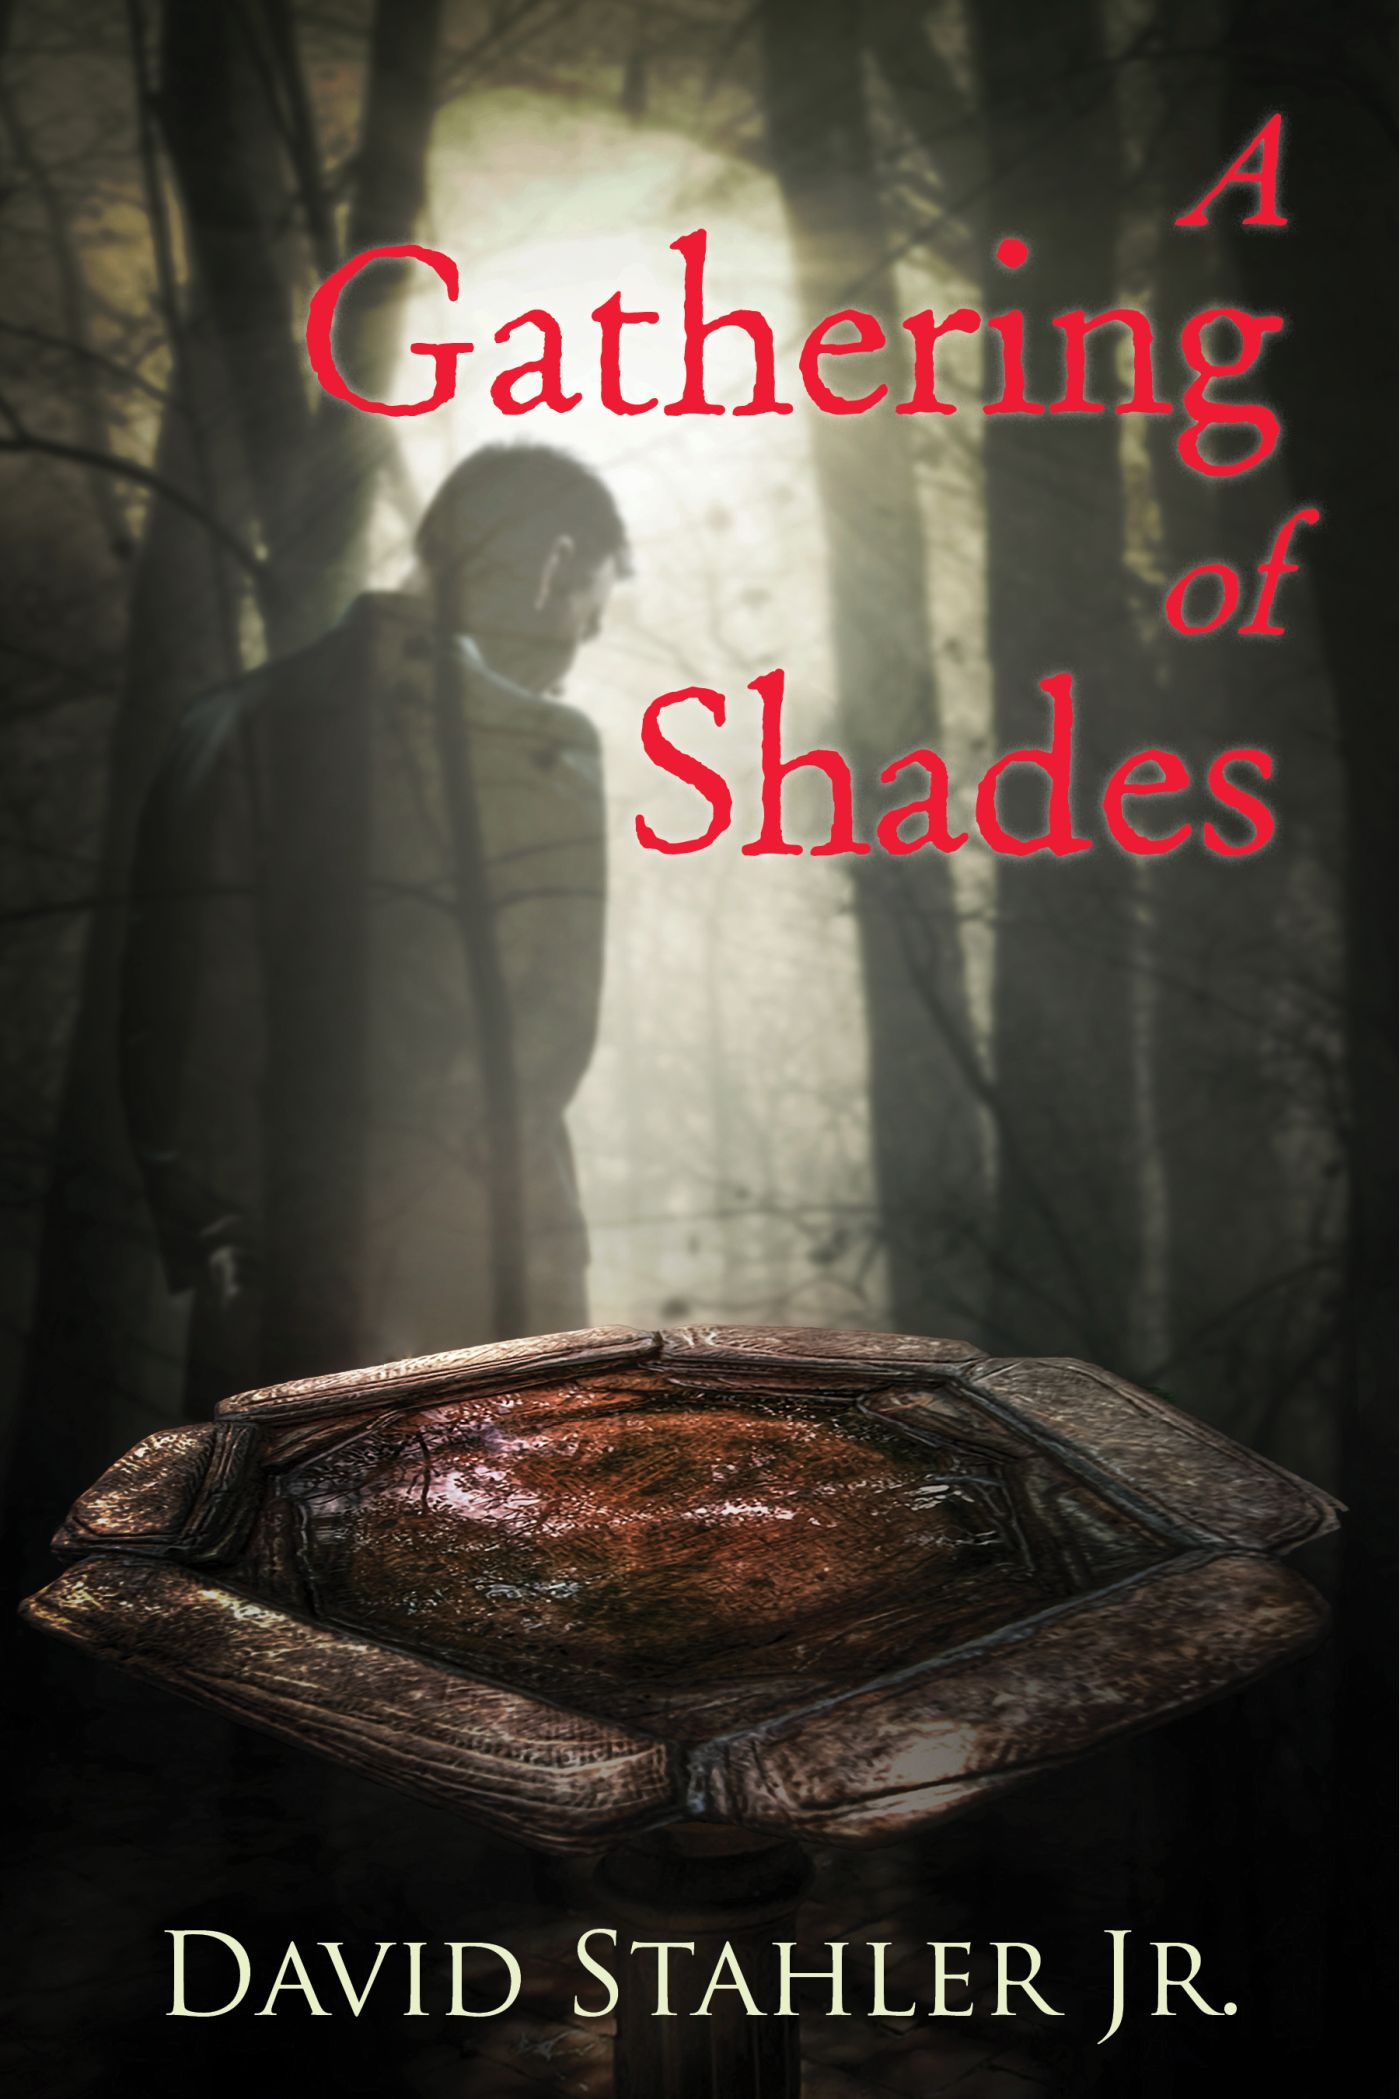 A-Gathering-of-Shades-FC-Resized.jpg